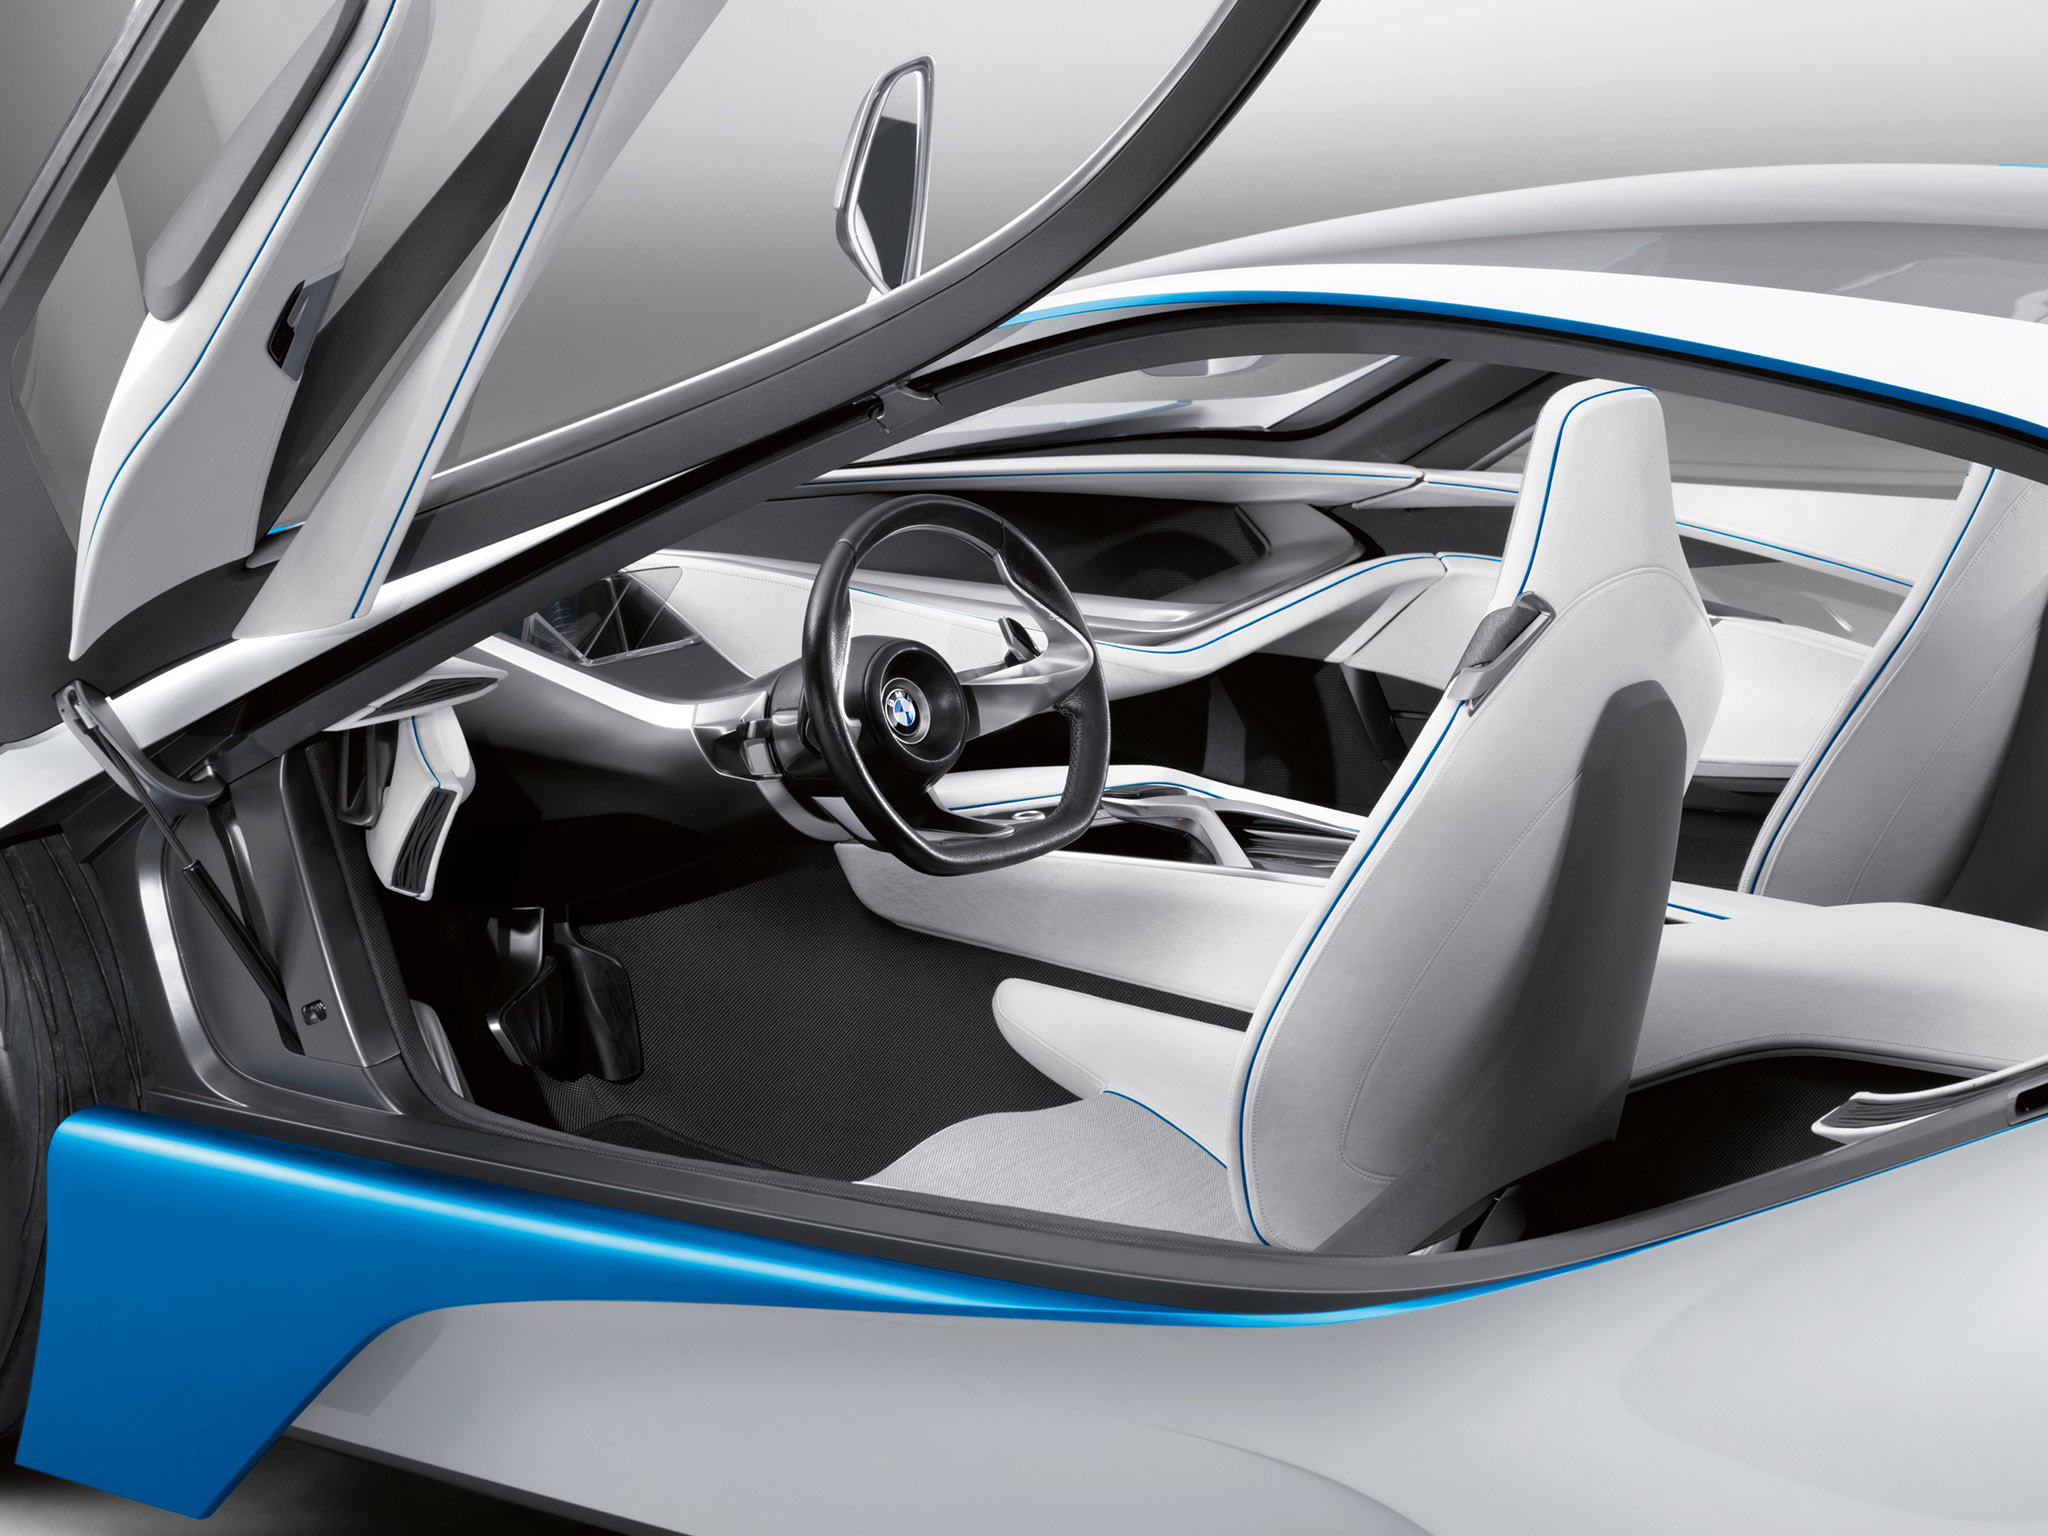 A closer look at the interior - BMW Vision Efficient